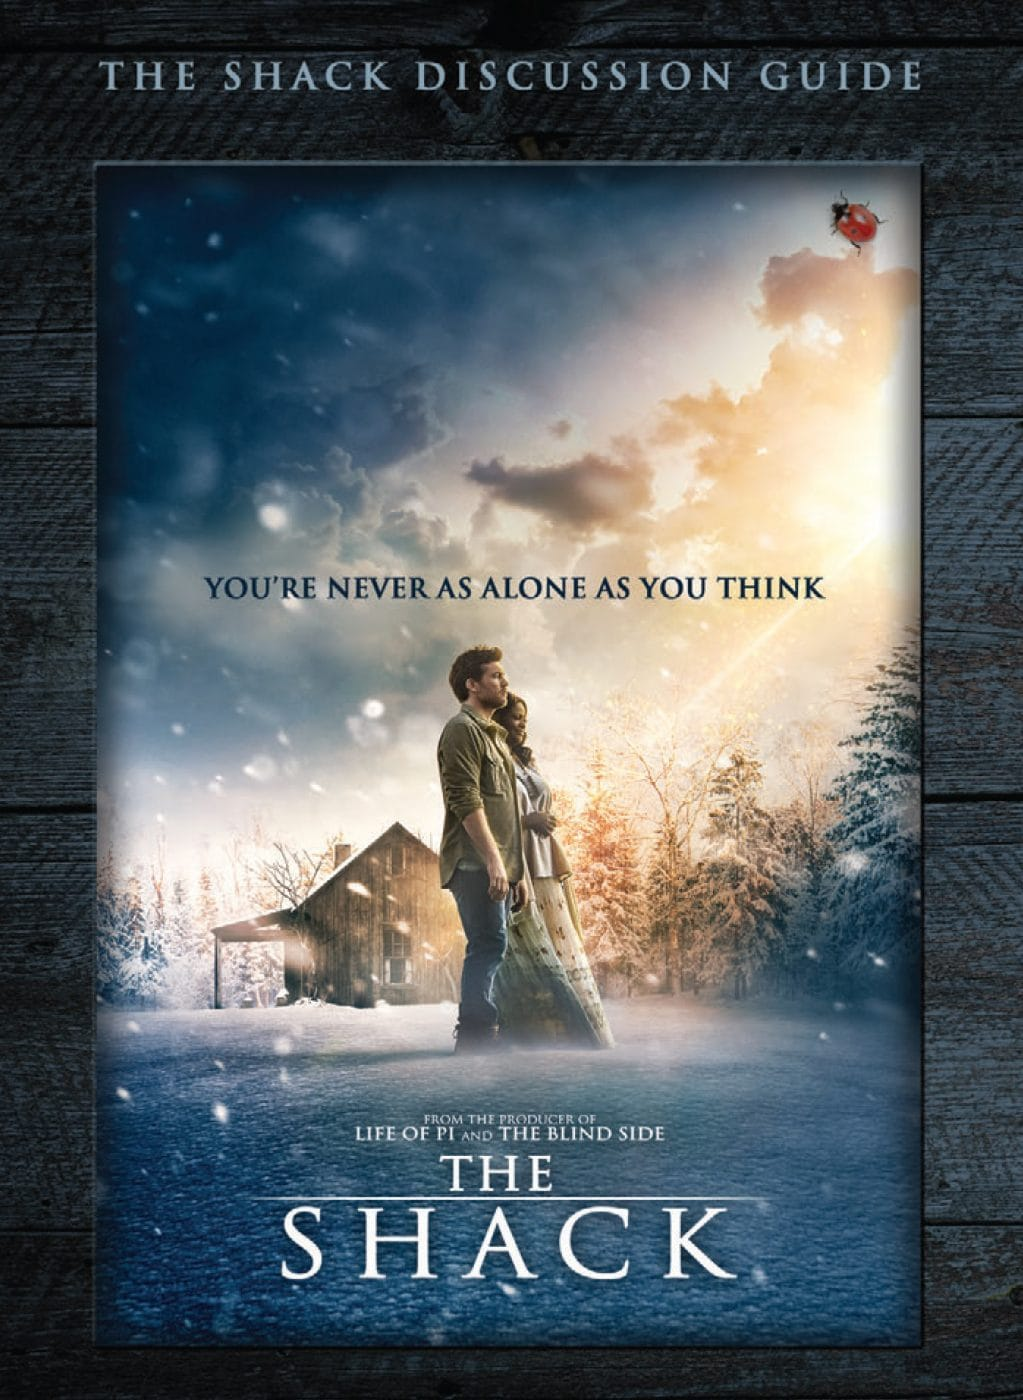 the shack_discussion guide